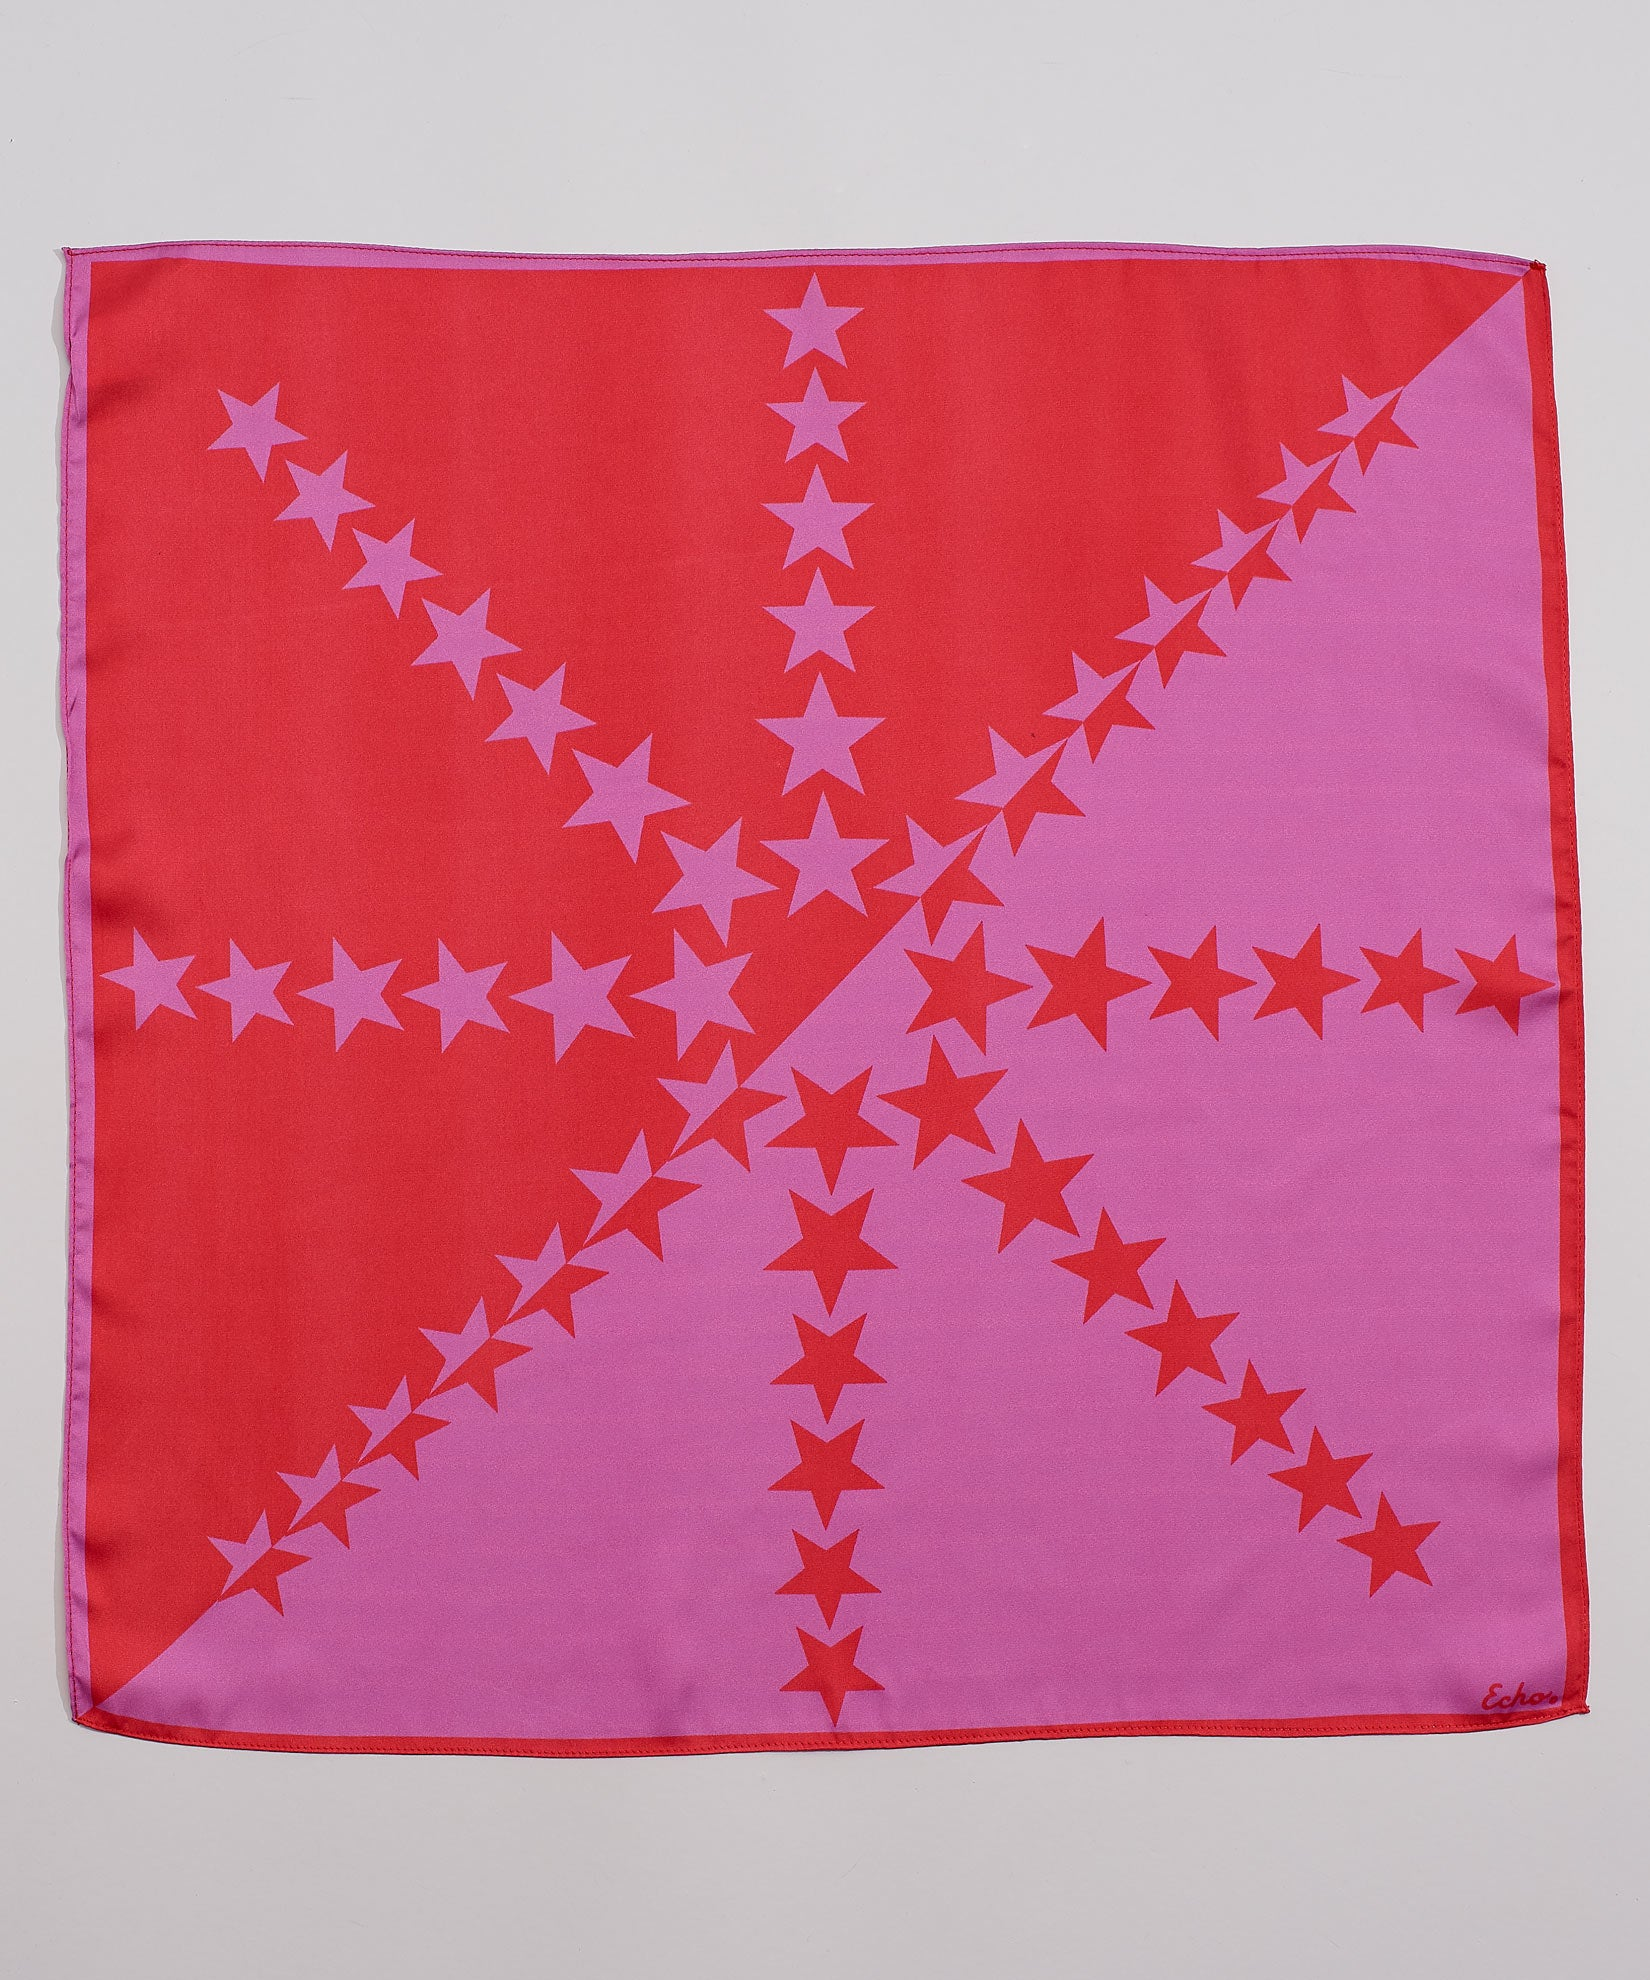 Cherry Red - Star Square